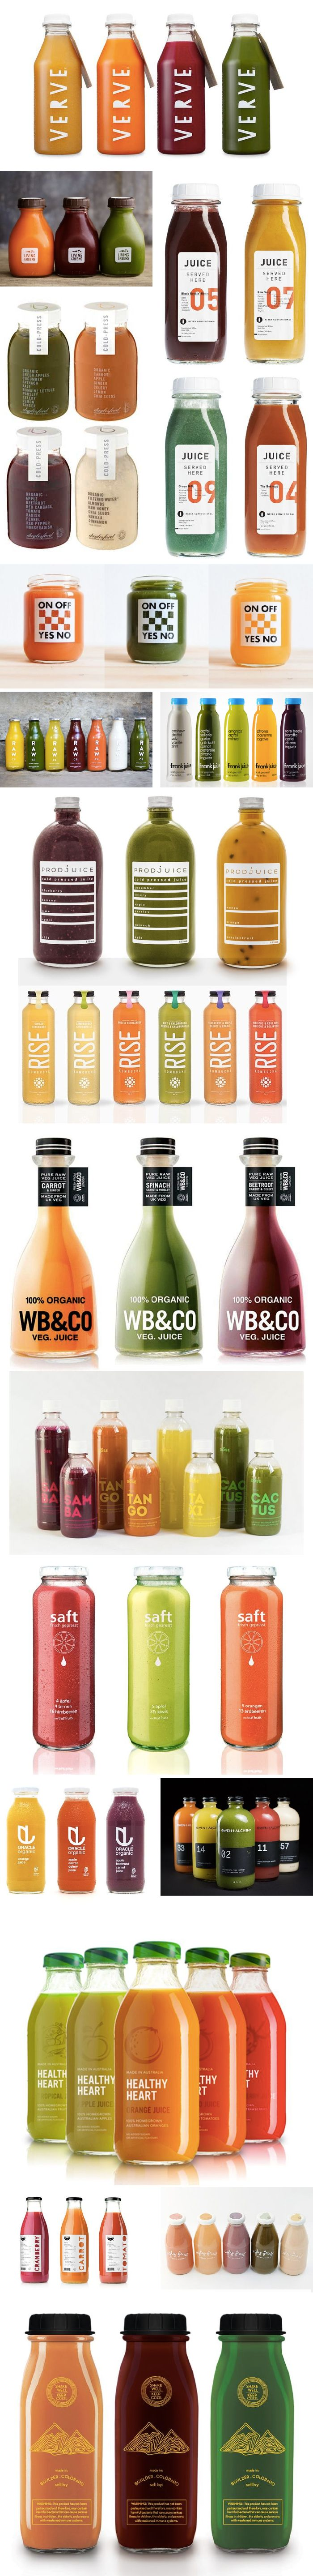 Juice packaging en masse